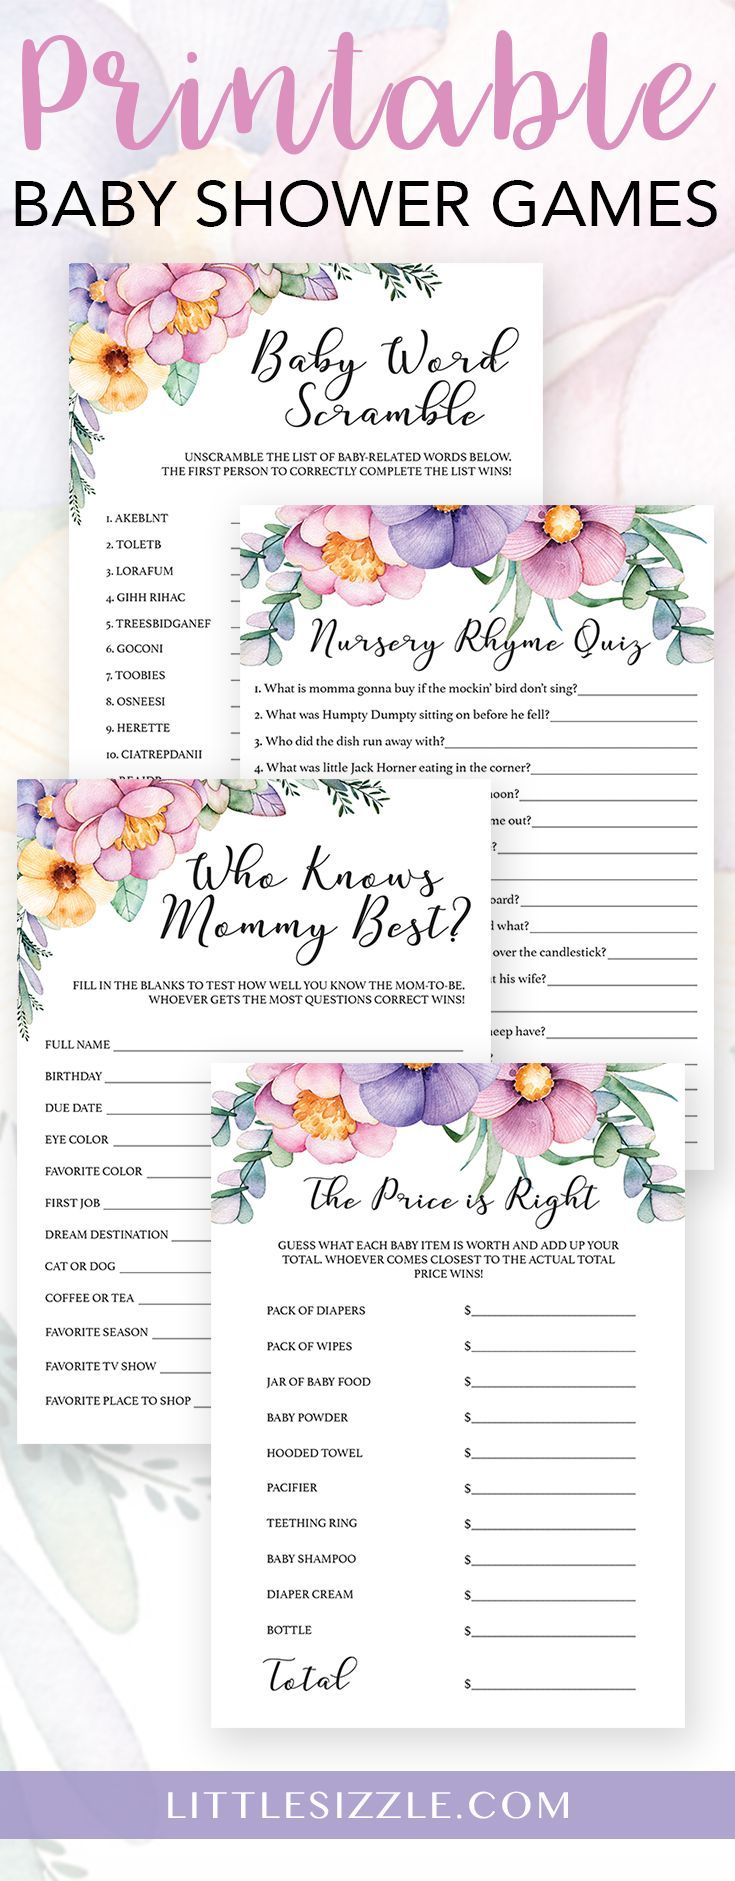 Pink and purple flower baby shower games for girl by LittleSizzle. Printable floral watercolor baby girl shower games to entertain large groups of guests. The pink and purple flower game pack includes fun AND easy shower games like Baby word scramble, Nursery rhyme quiz,The price is right and Who knows mommy best. #printable #diy #babyshowergames #babyshowerideas #floral